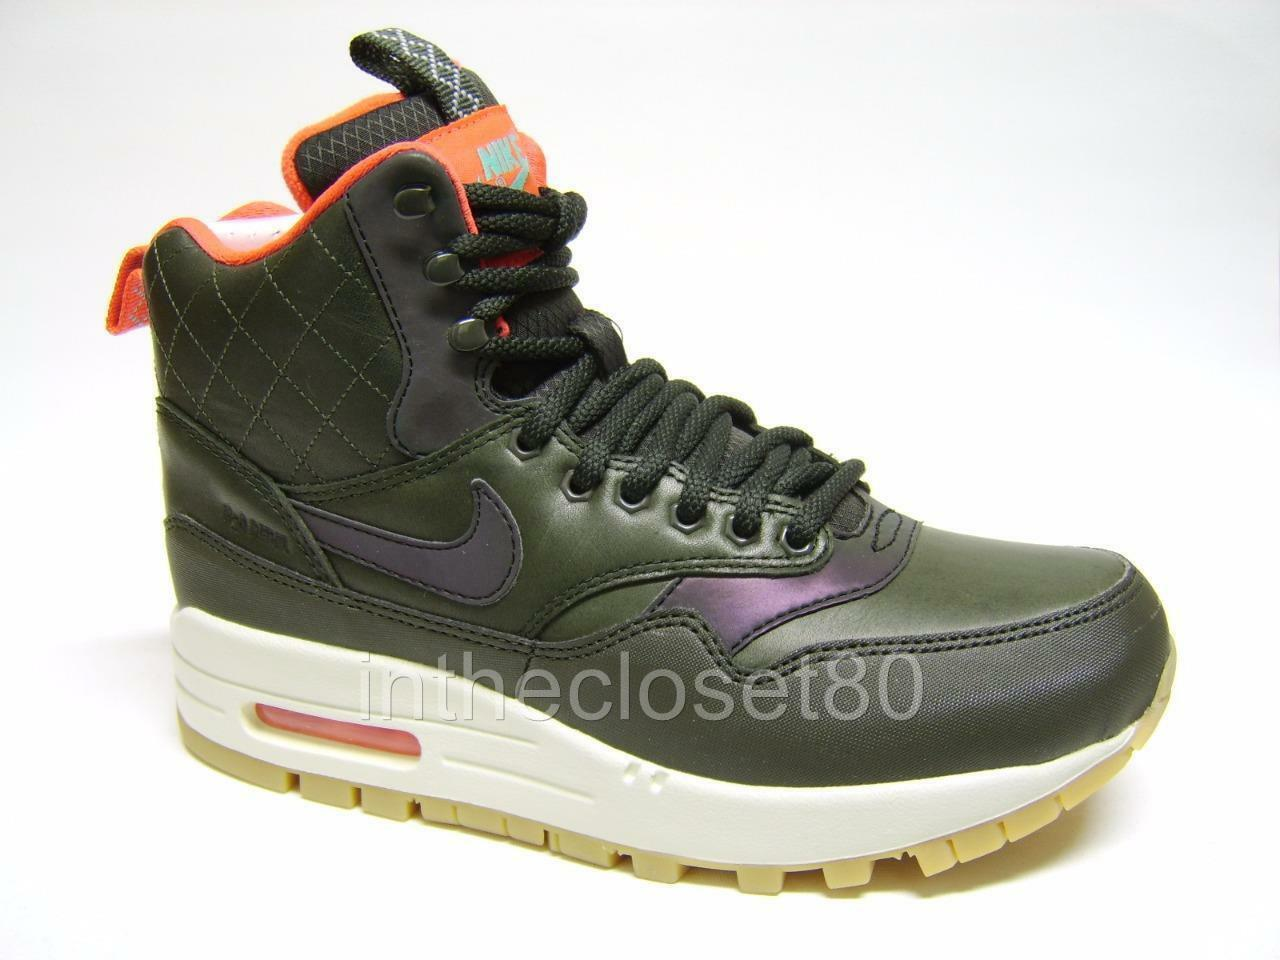 Wo Hommes Nike Air Max 1 Mid Sneakerboot Reflect Trainer Boot Sequoia 807307 300